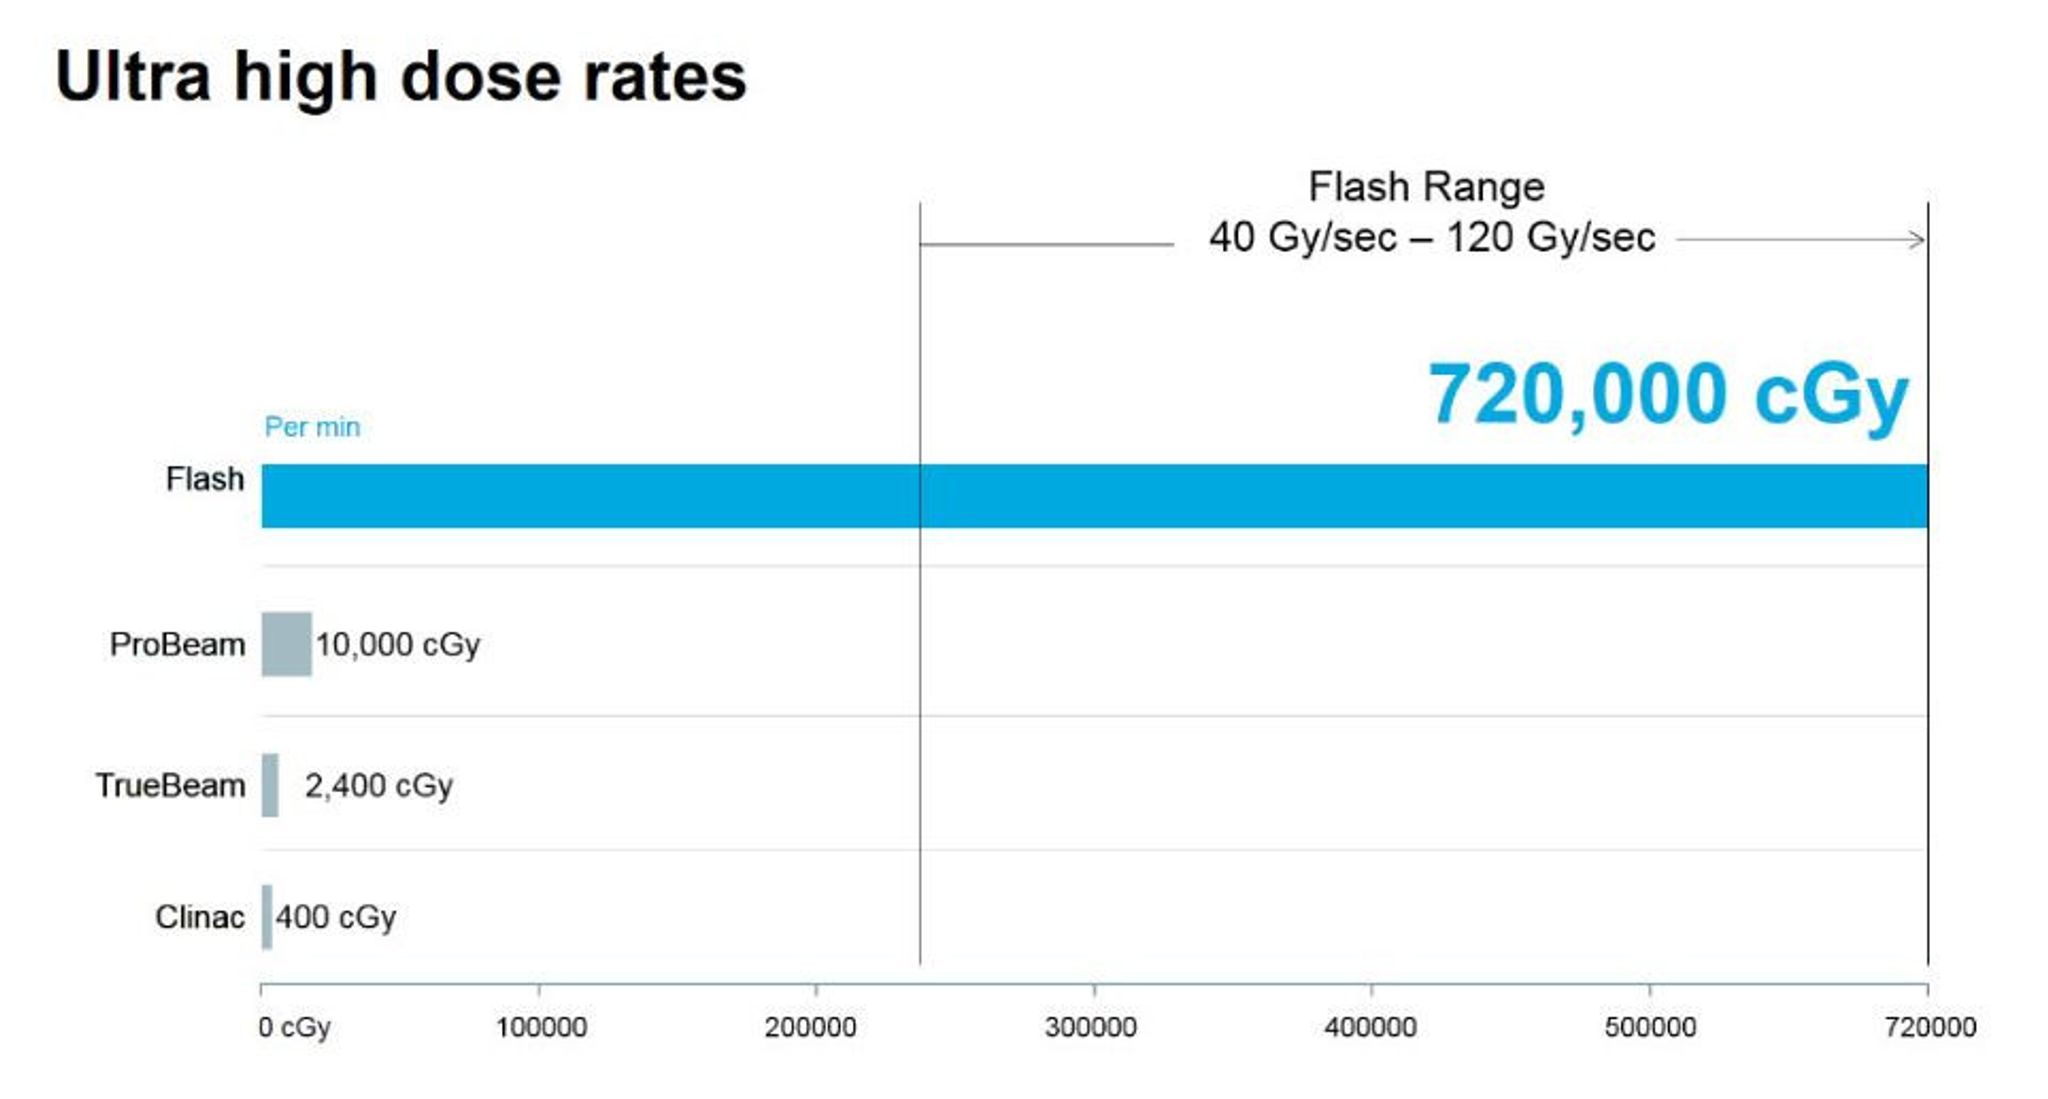 Flash Forward Ultra High Dose Rate Chart